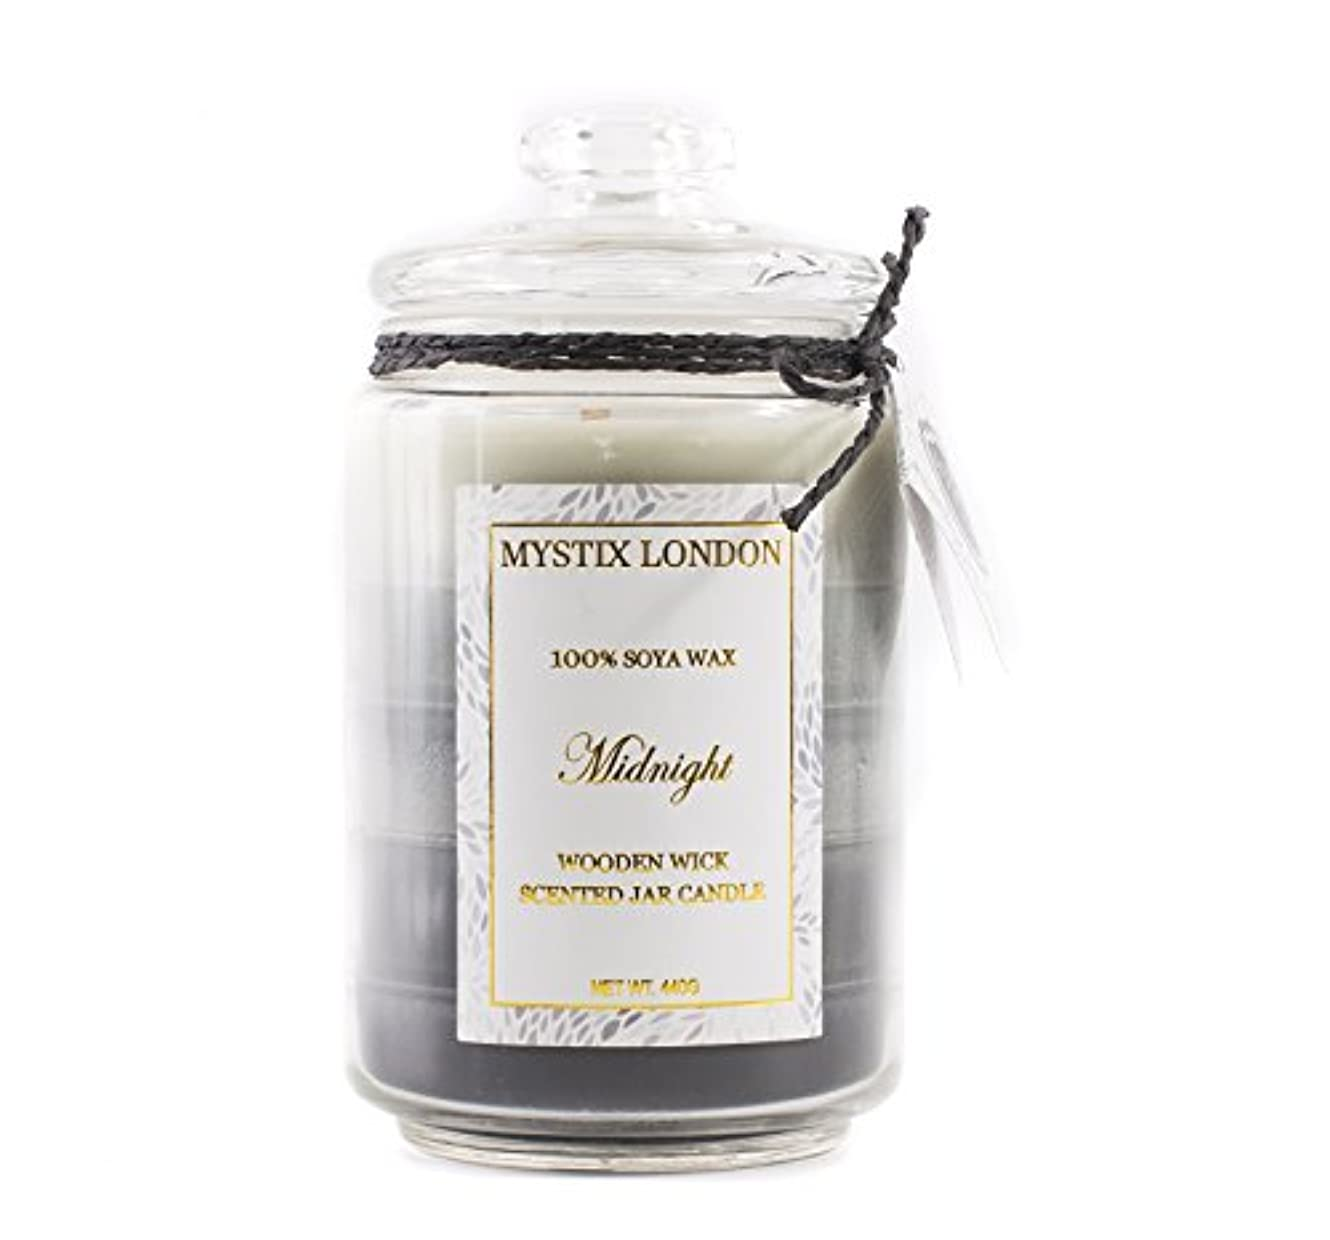 ロマンス嵐が丘タイプライターMystix London Midnight Wooden Wick Scented Jar Candle 440g